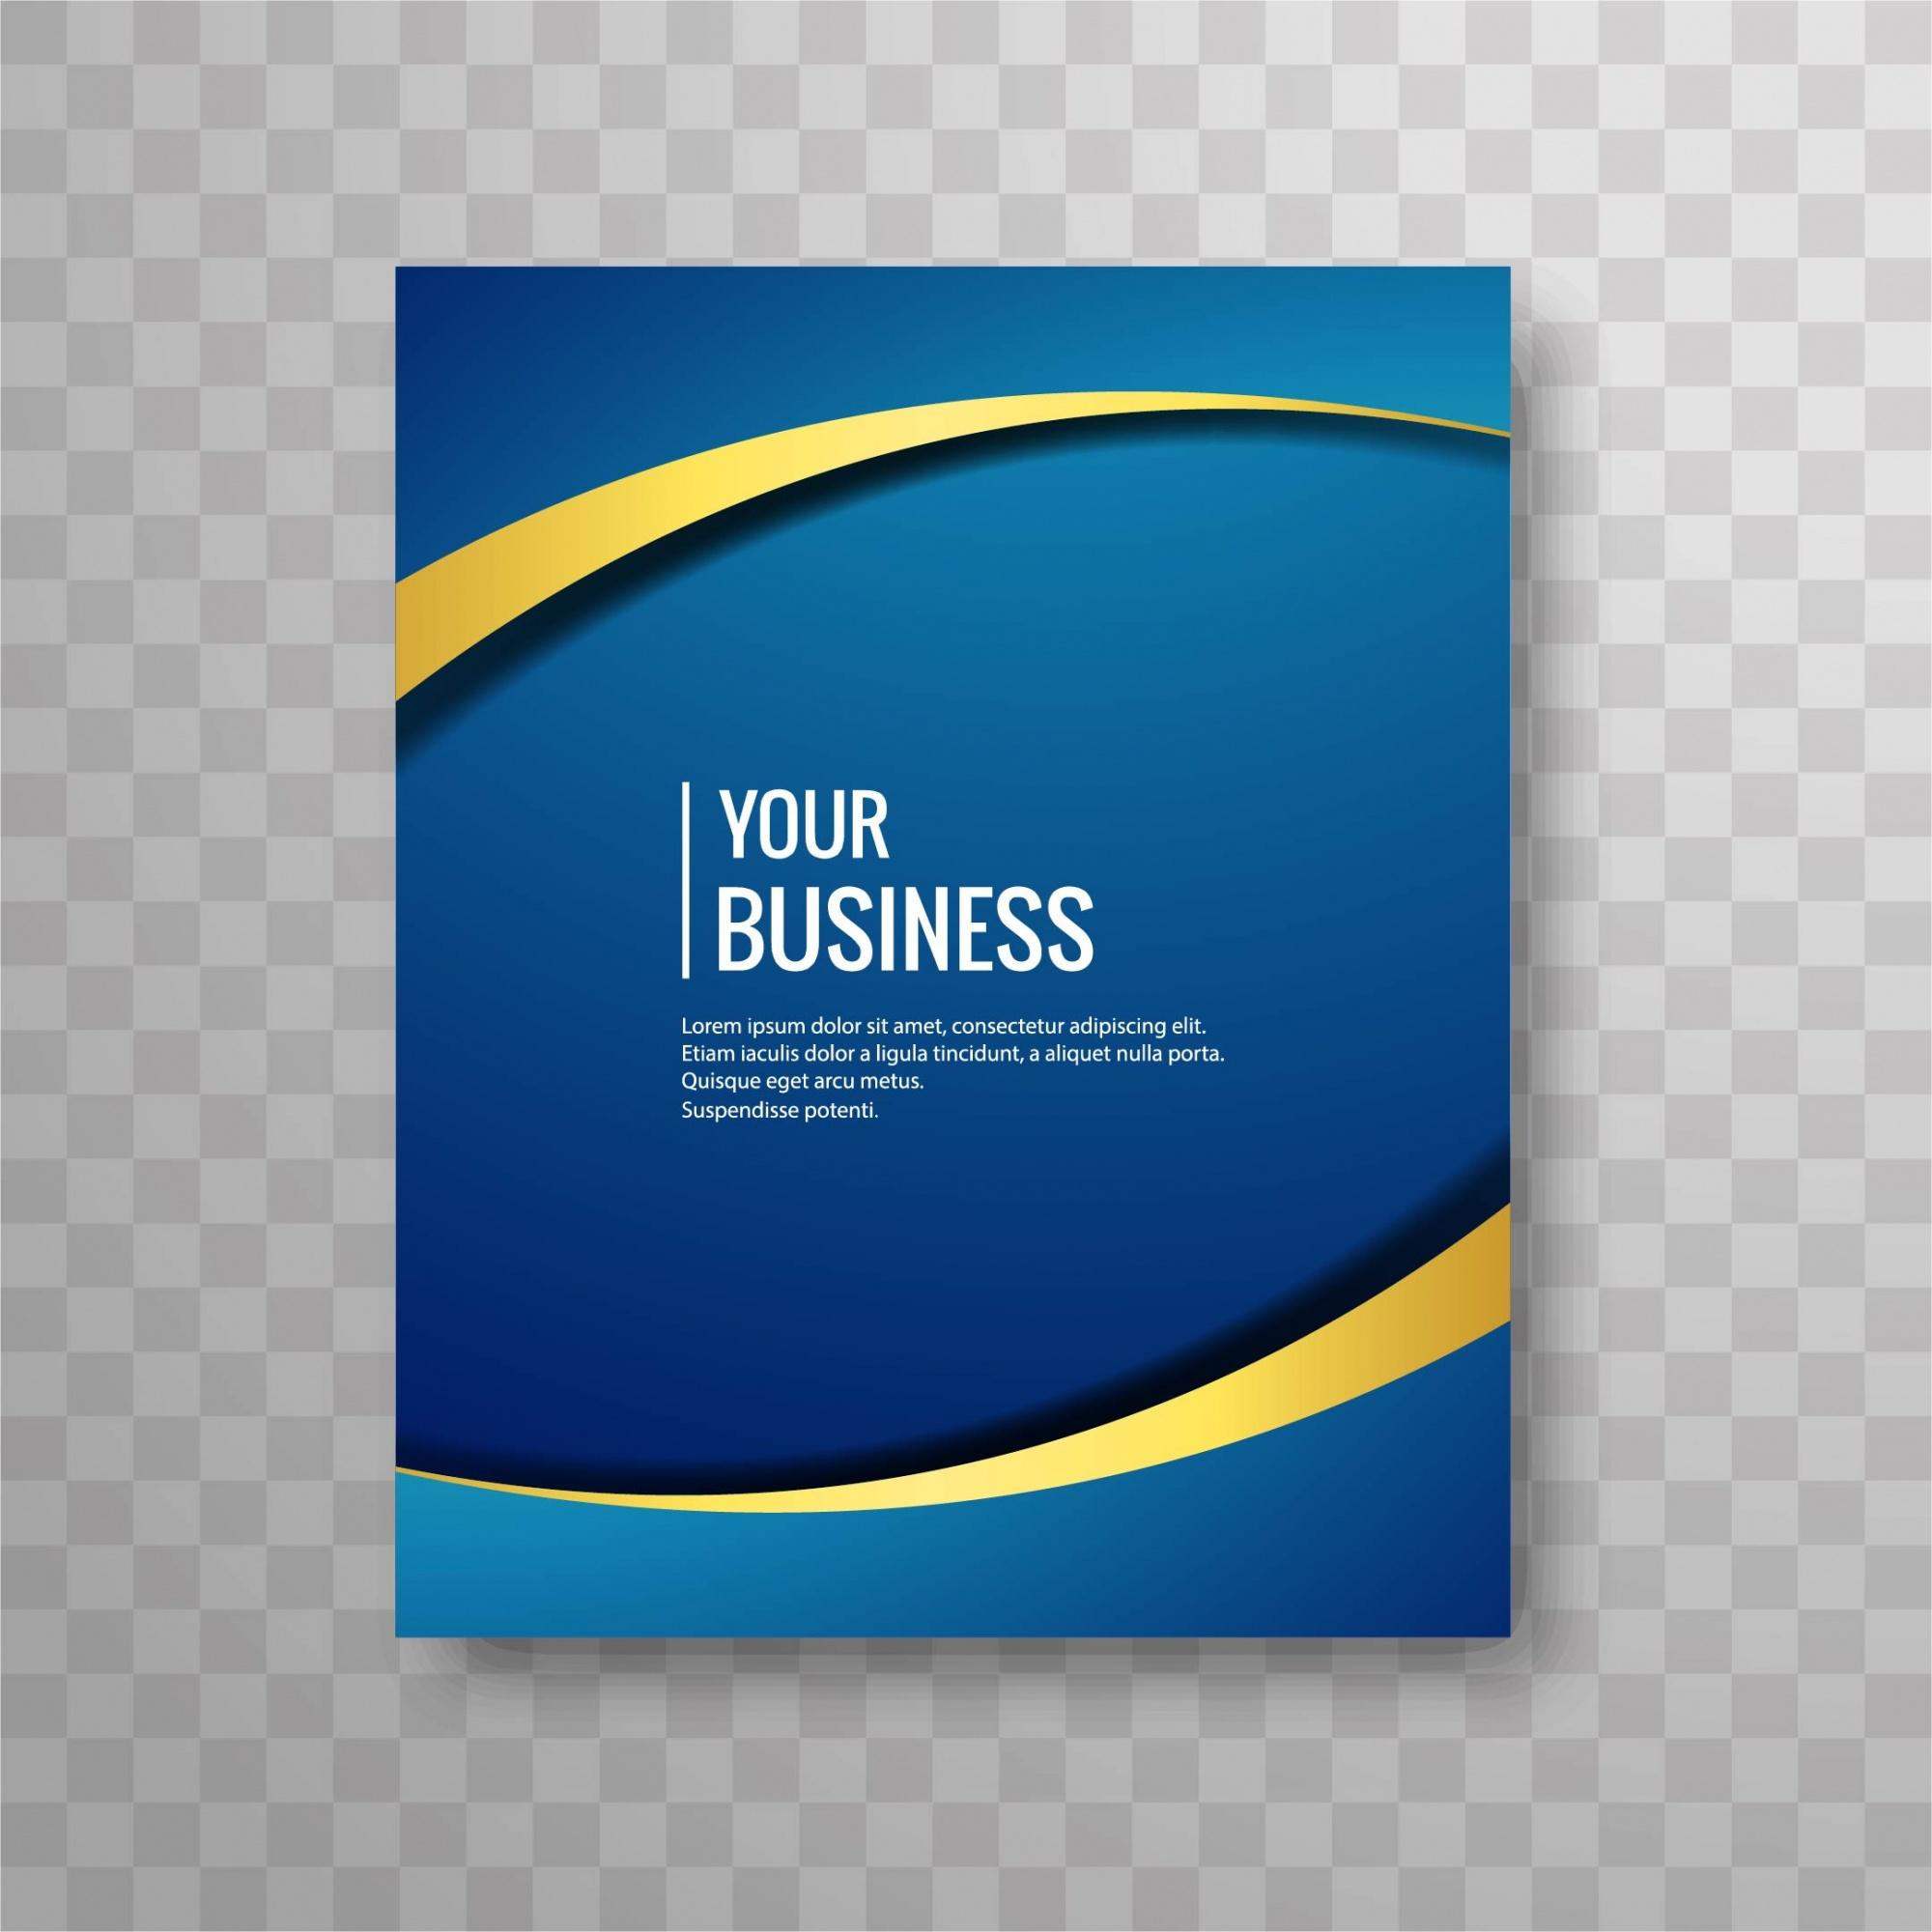 Blue wavy brochure design